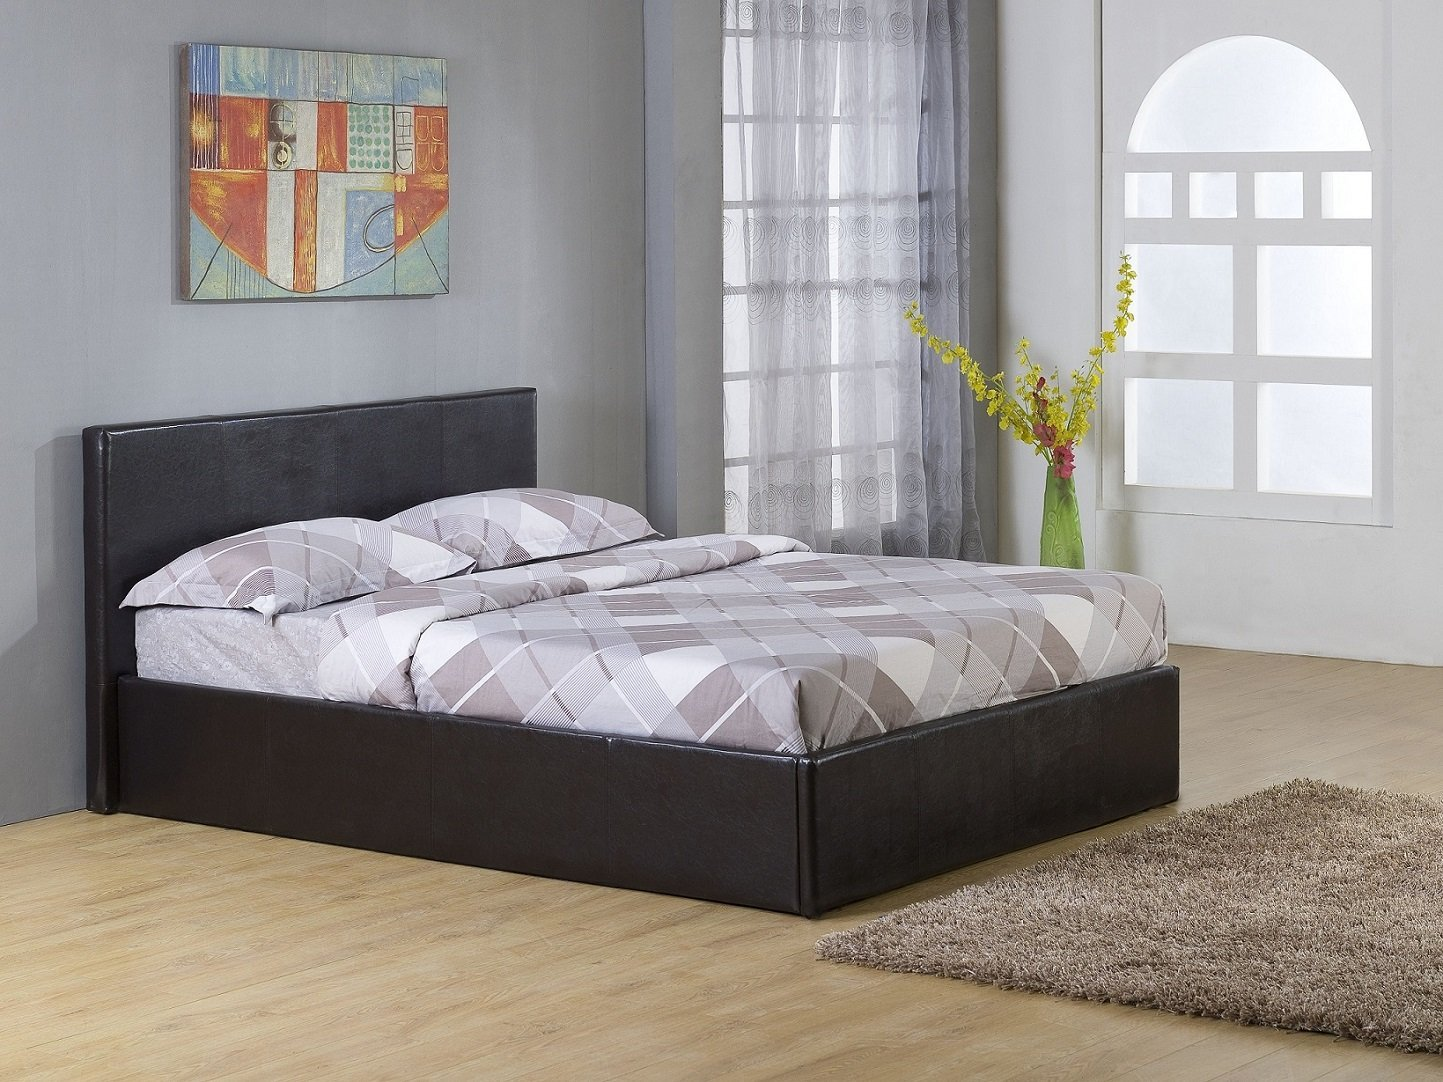 Image of: King Storage Beds Size